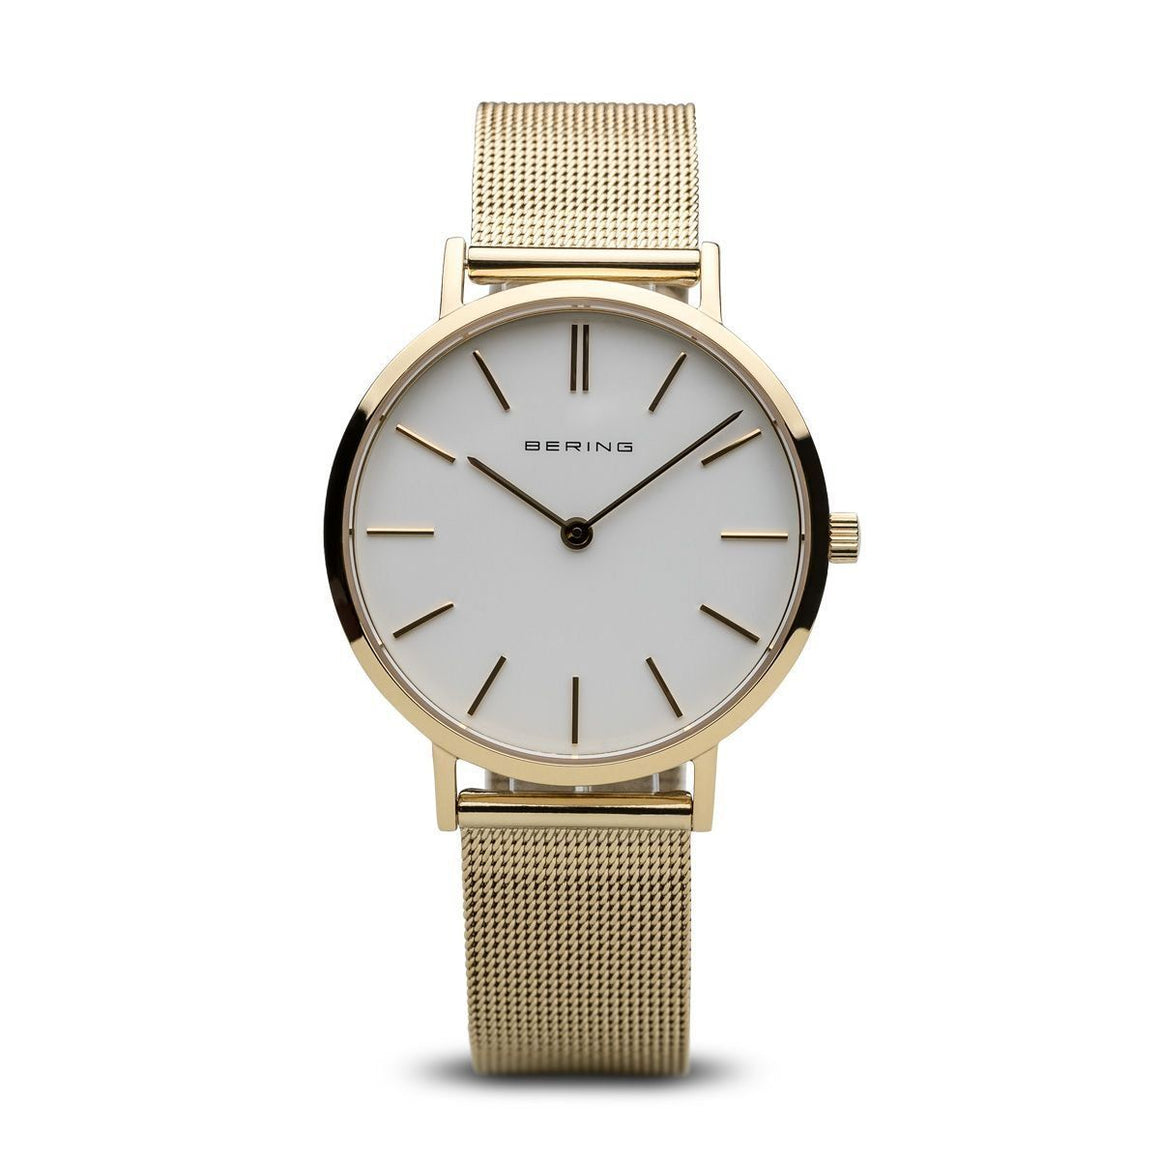 Berings-Ladies-Watch-Gold-Tone-Mesh-Strap-14134-331-from-Jools-jewellery